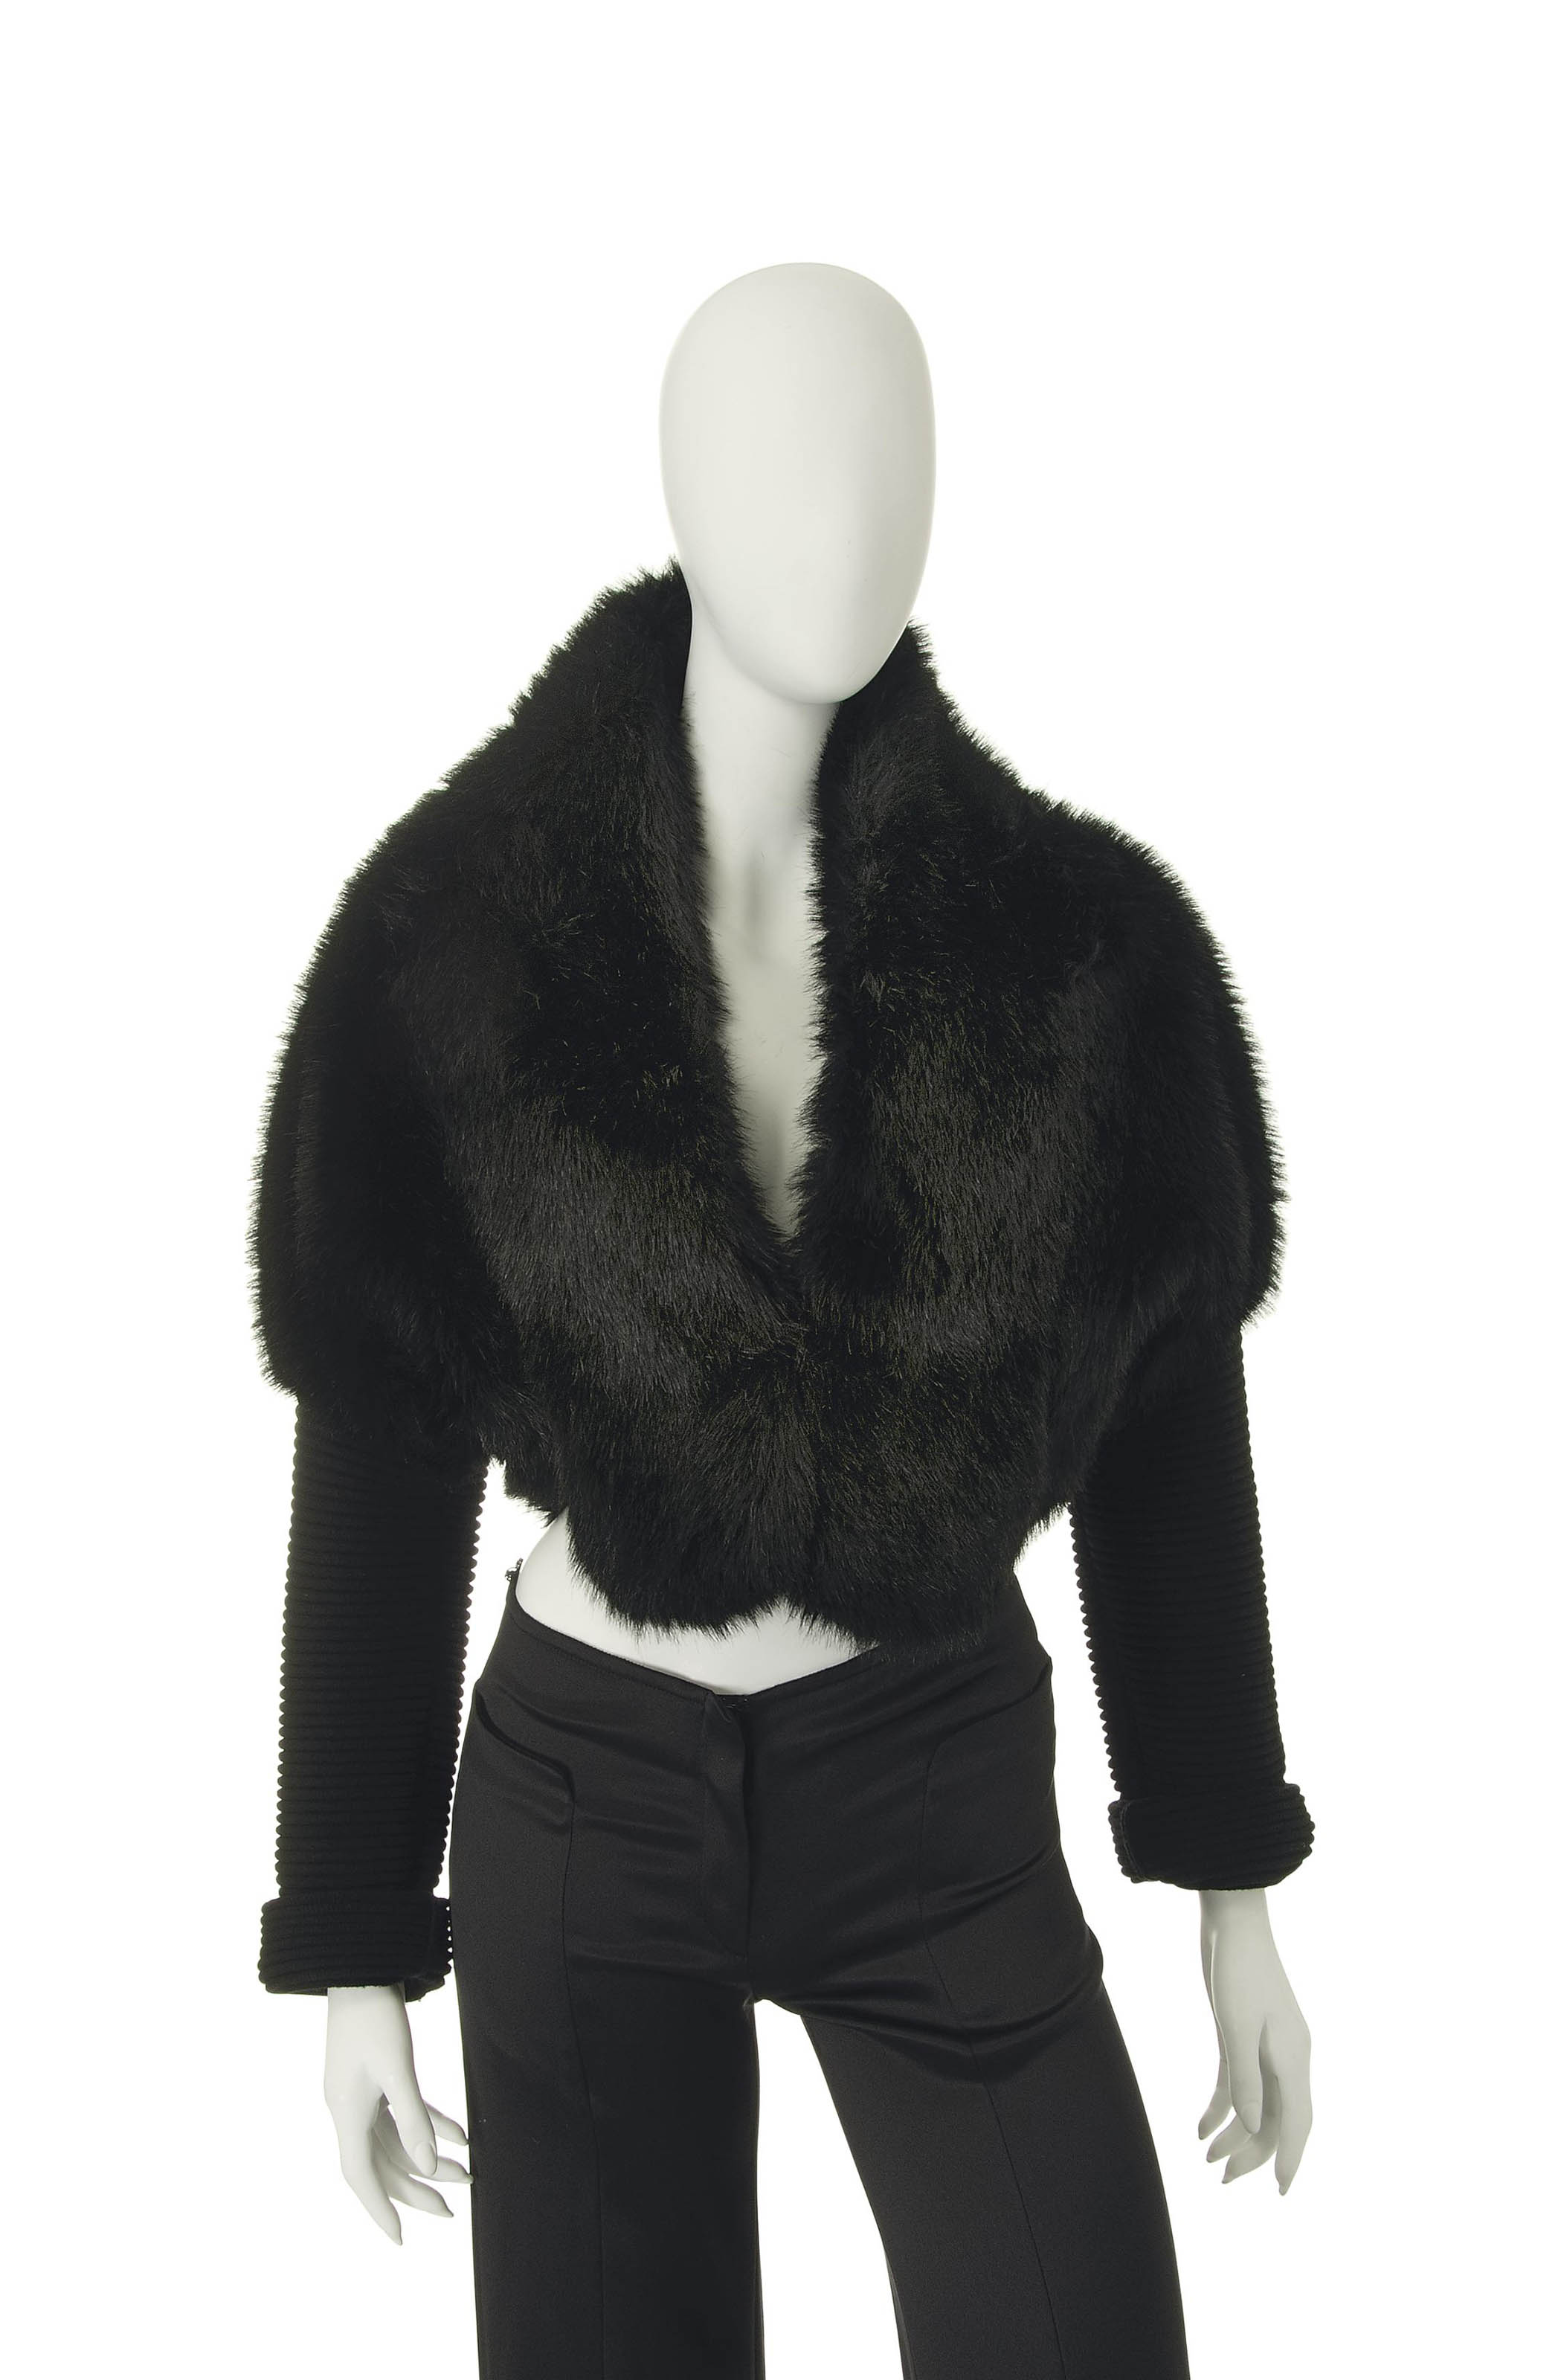 A CROPPED GLOSSY BLACK FAUX FUR JACKET